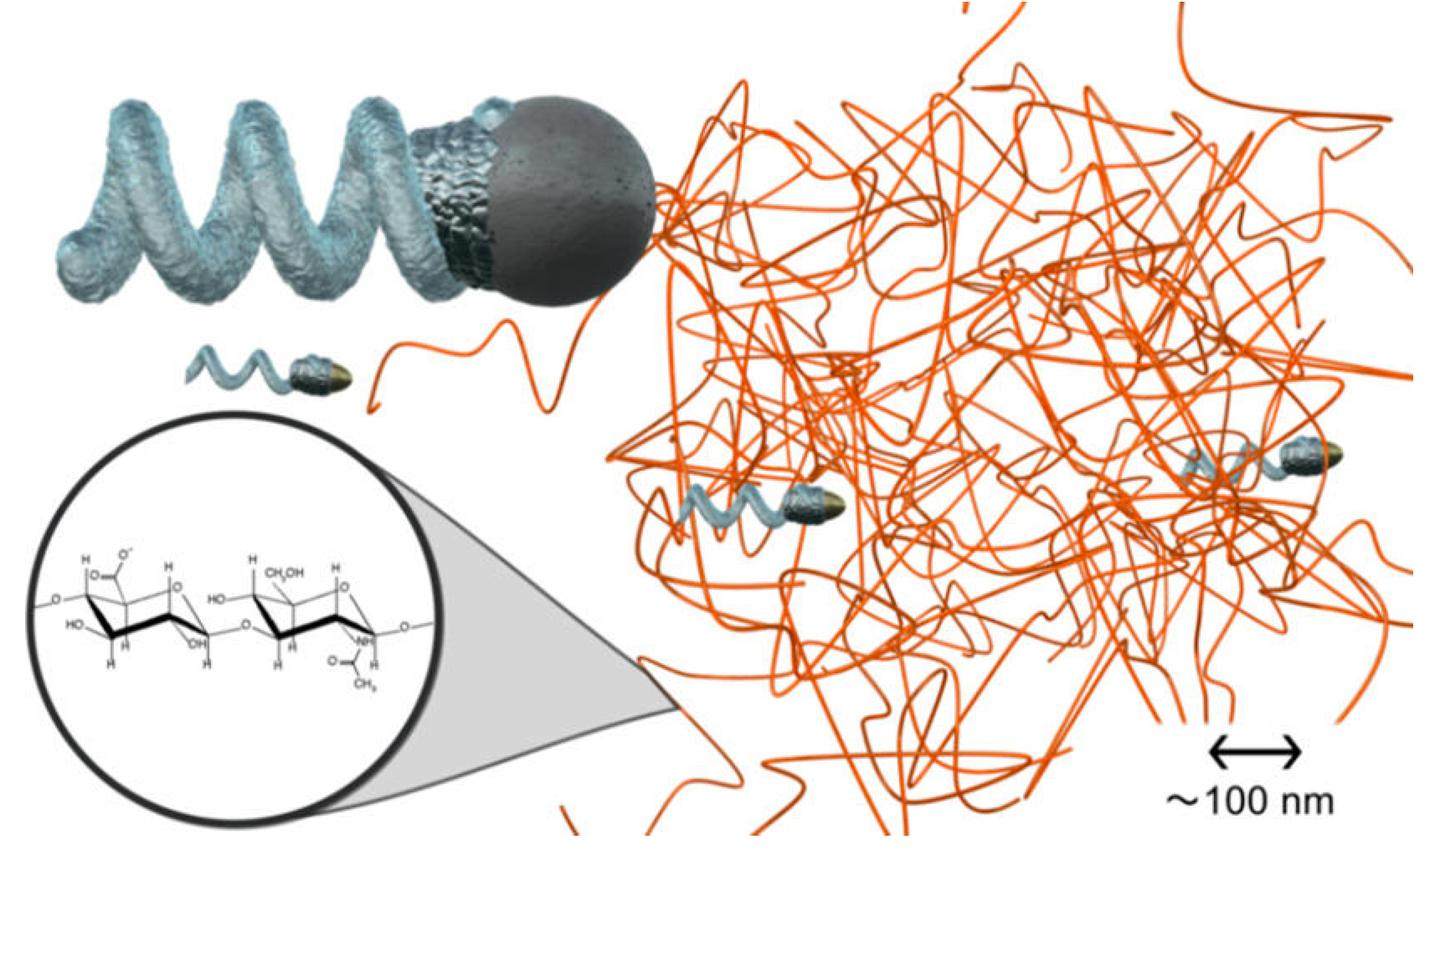 The nanoprop is able to easily pass between polymer chains, like those present in bodily fluids